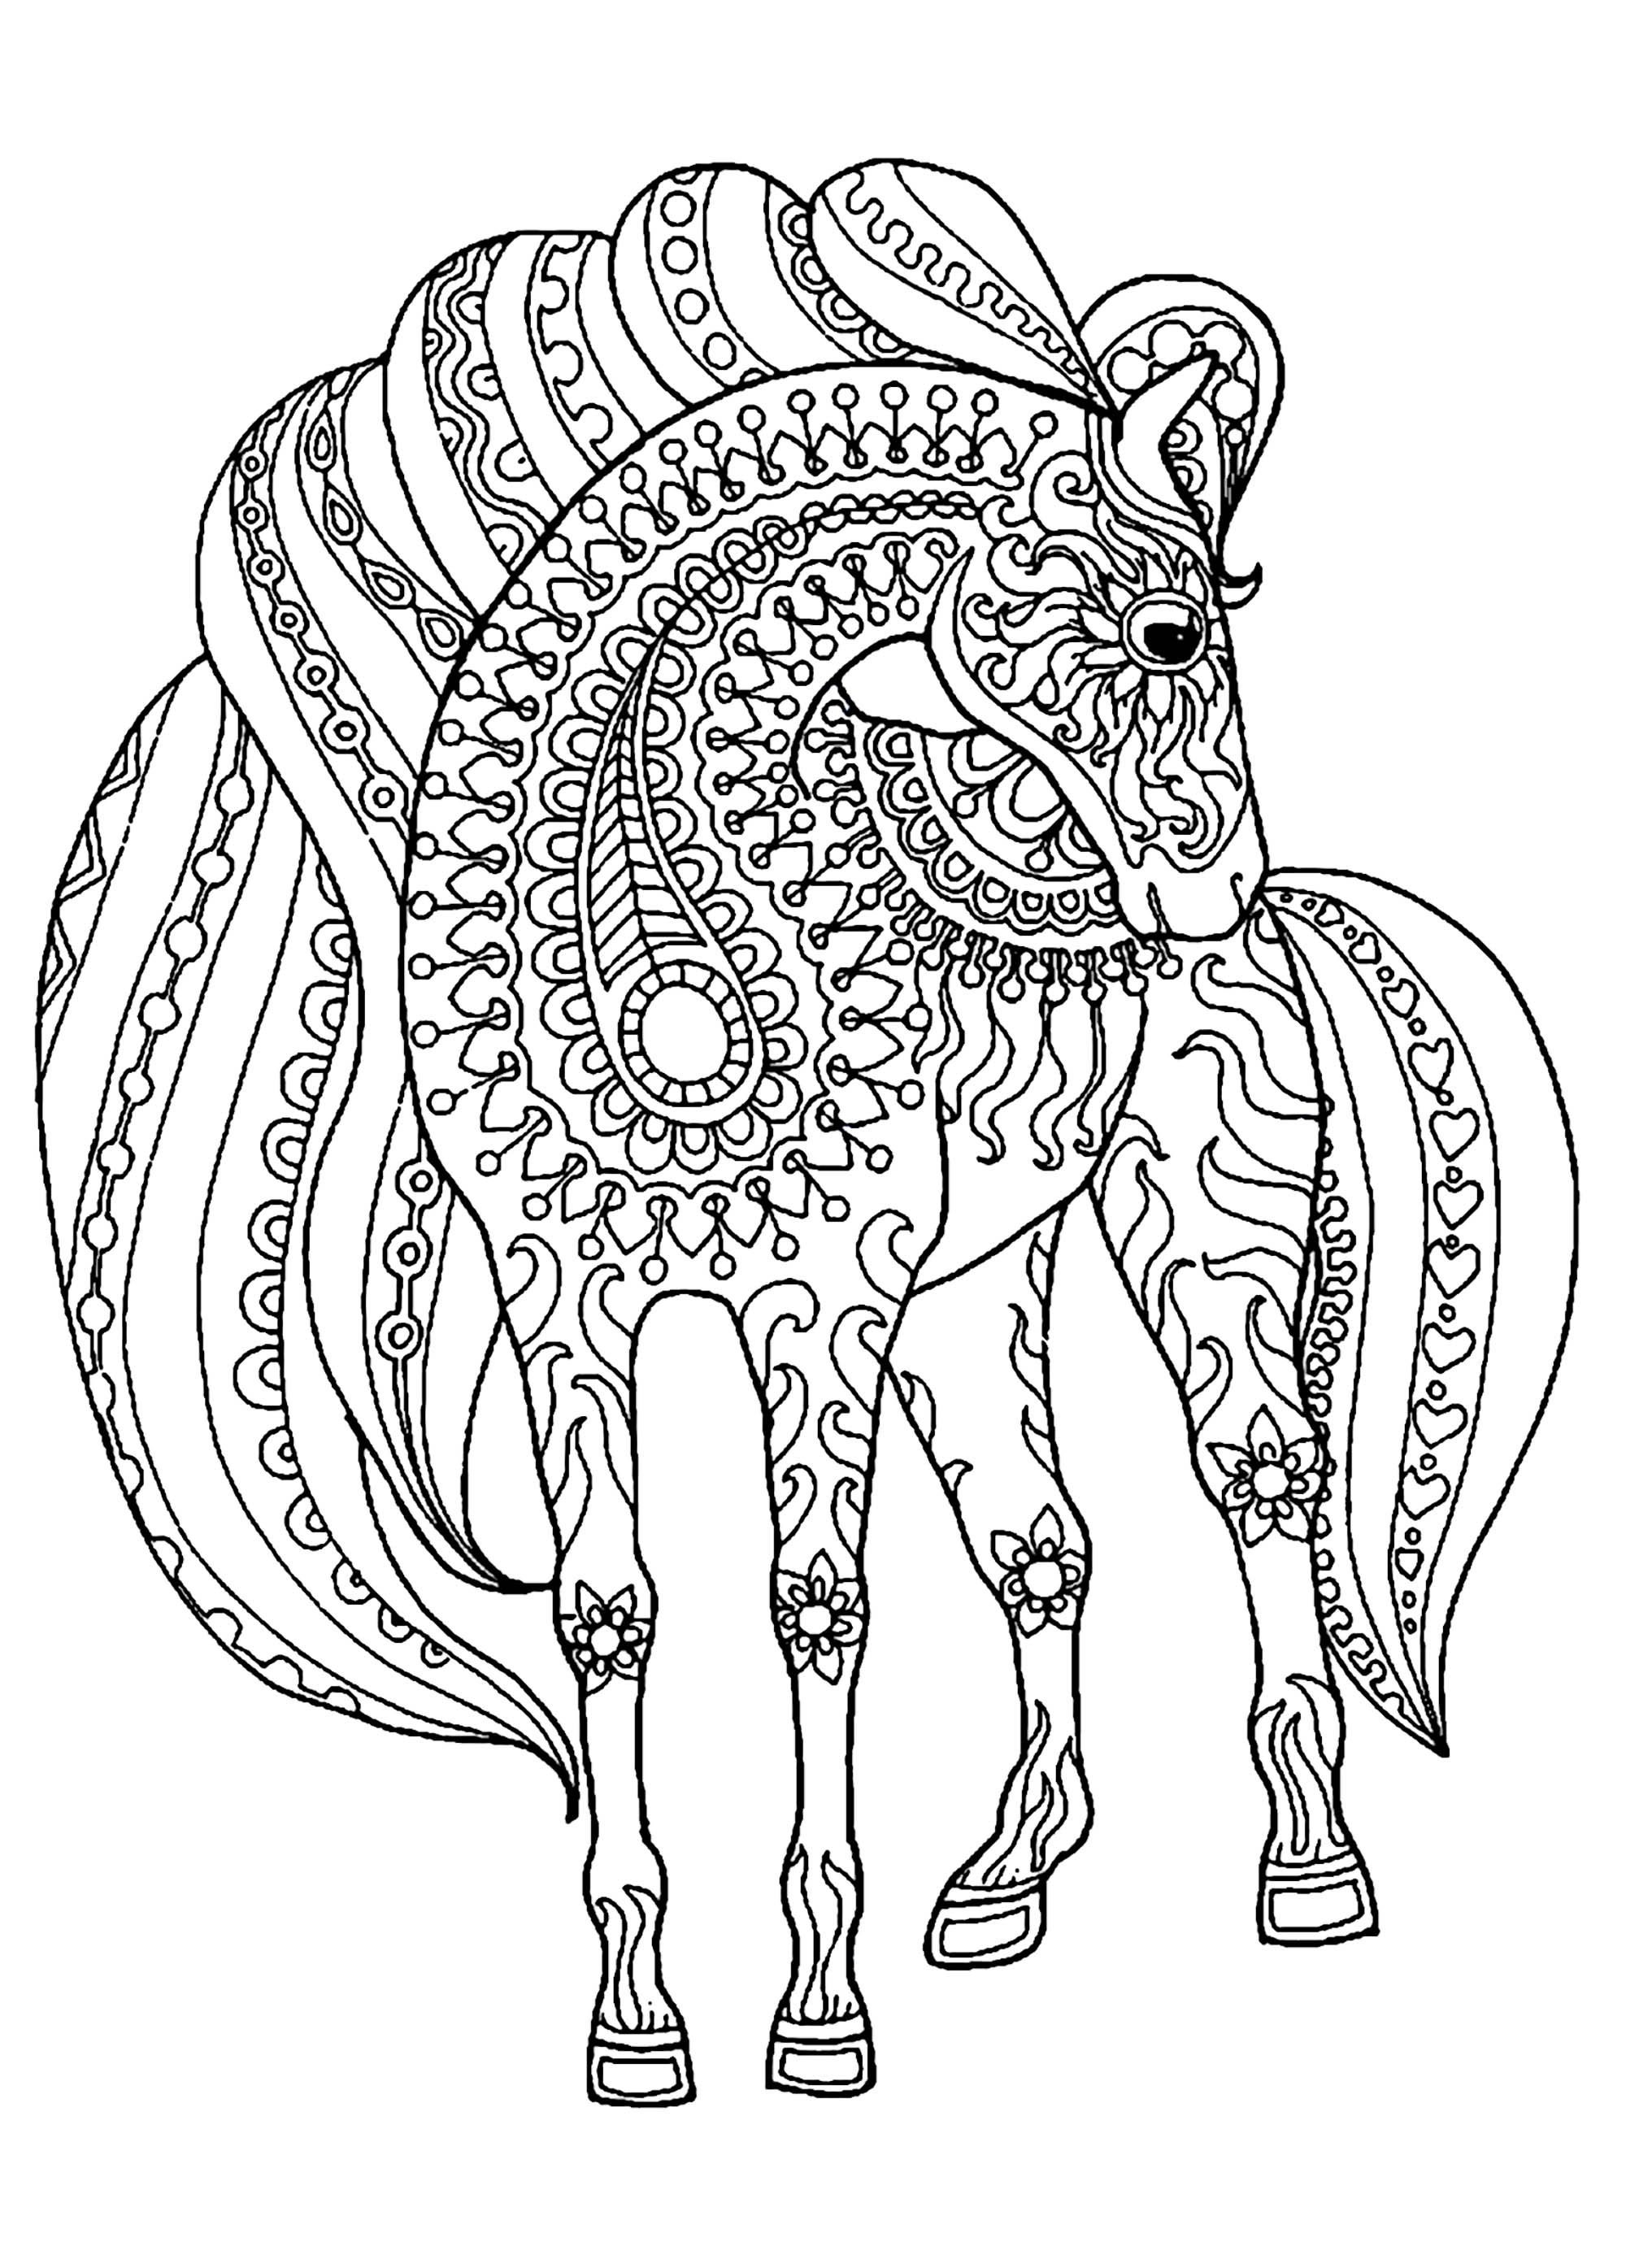 Coloriage Cheval Zen.Cheval Motifs Zentangle Simples Chevaux Coloriages Difficiles